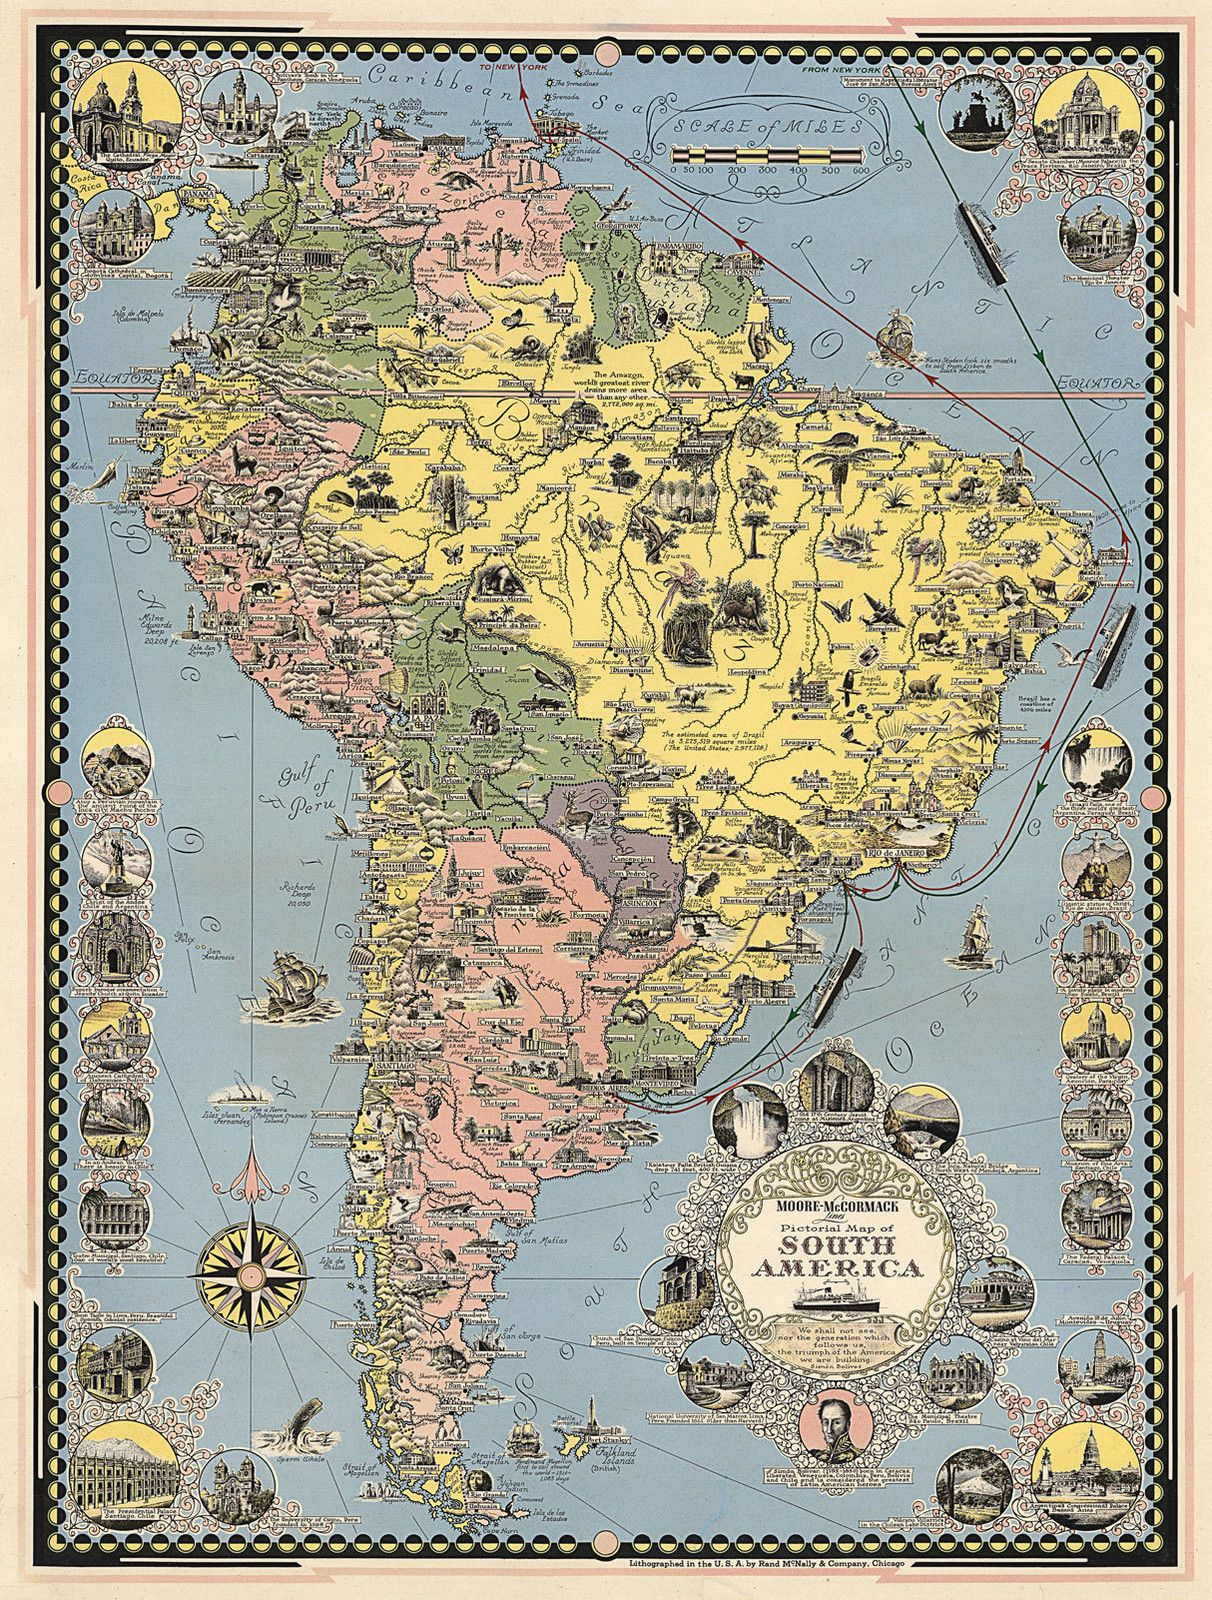 Midcentury pictorial map cruise routes new york to south america midcentury pictorial map cruise routes new york to south america wall art poster ebay gumiabroncs Gallery